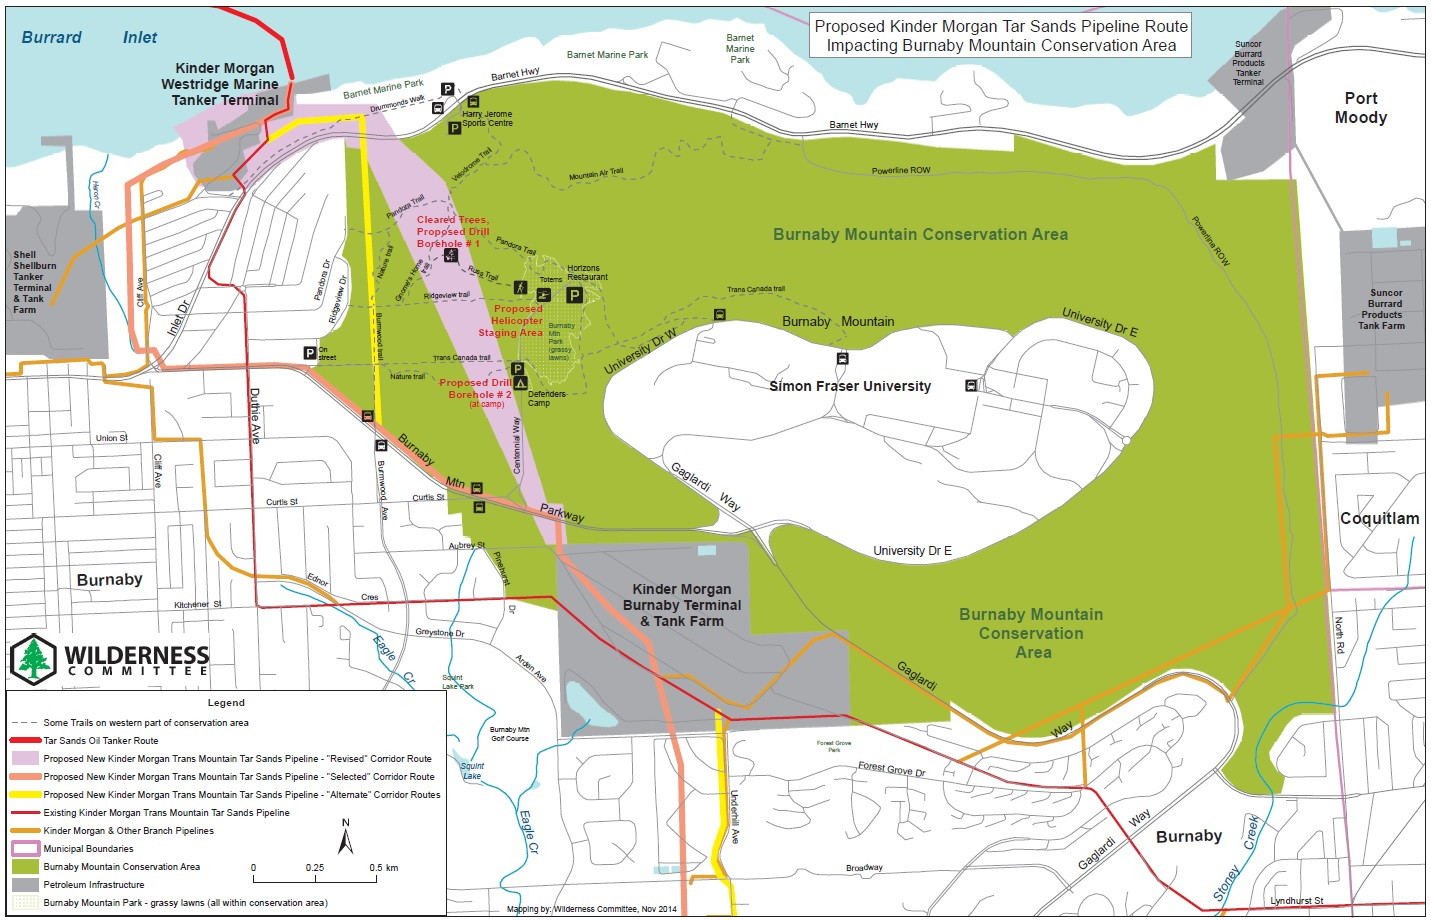 Kinder Morgan Pipeline Route Maps | Wilderness Committee - Kinder Morgan Pipeline Map Texas